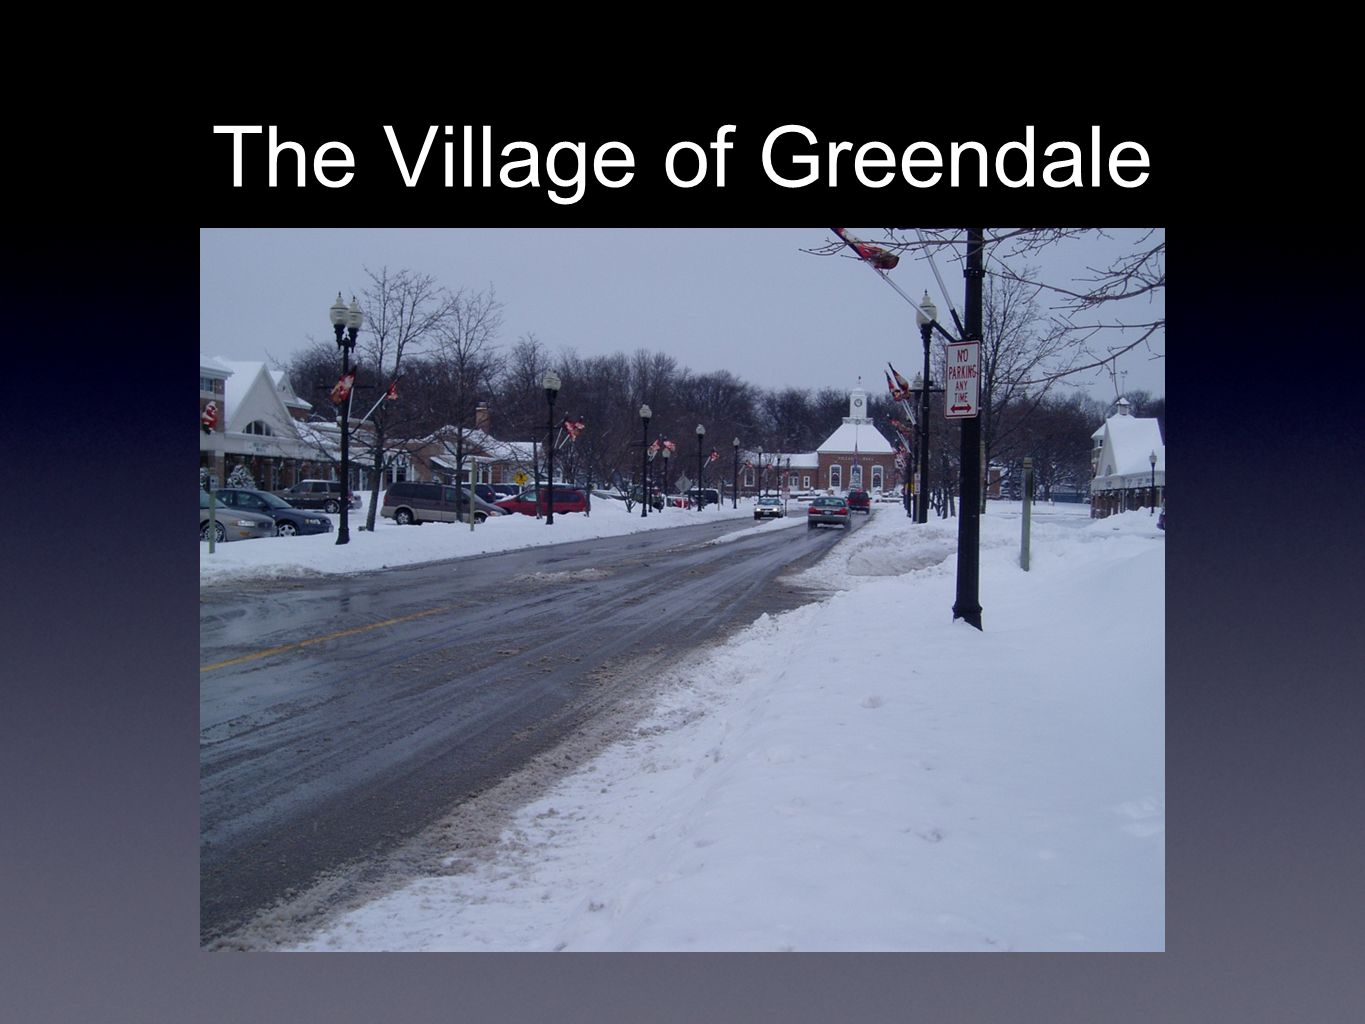 The Village of Greendale